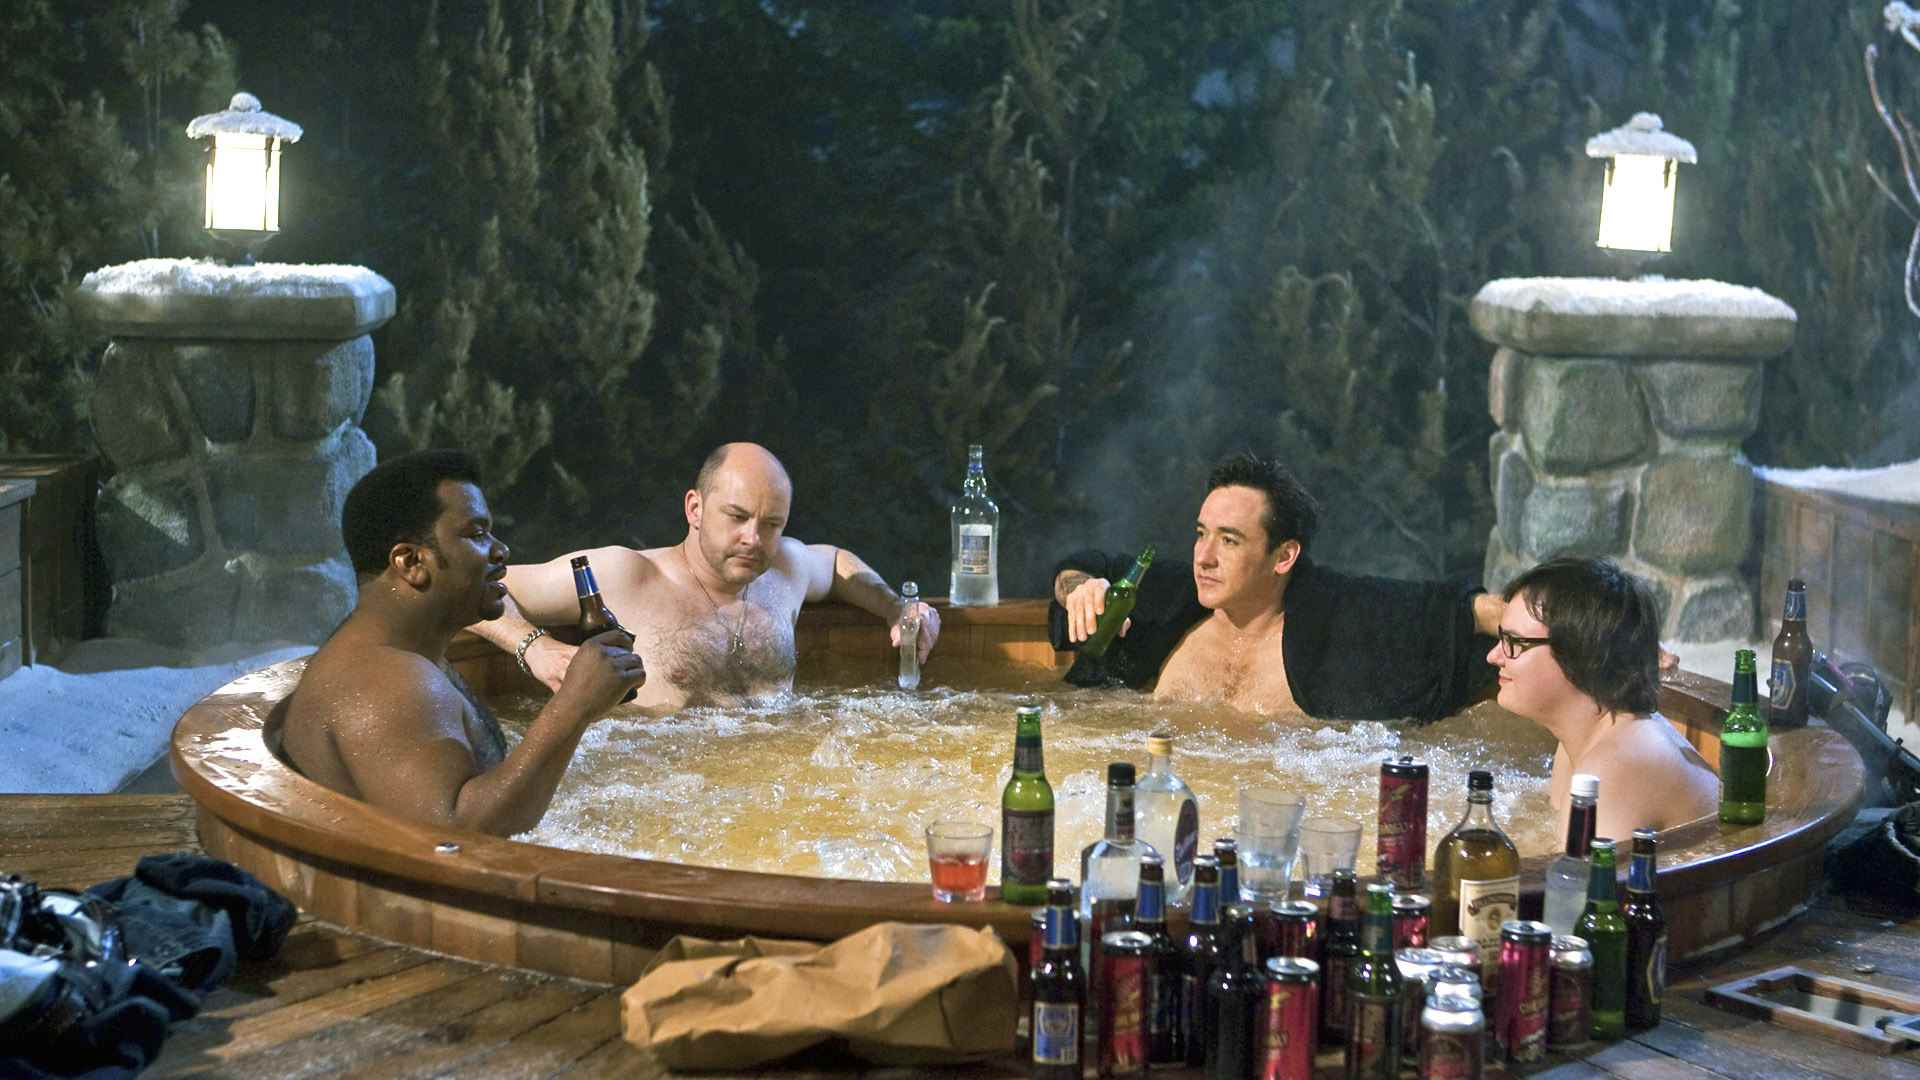 Craig Robinson, Rob Corddry, John Cusack and Clark Duke relax in the hot tub in Hot Tub Time Machine (2010)